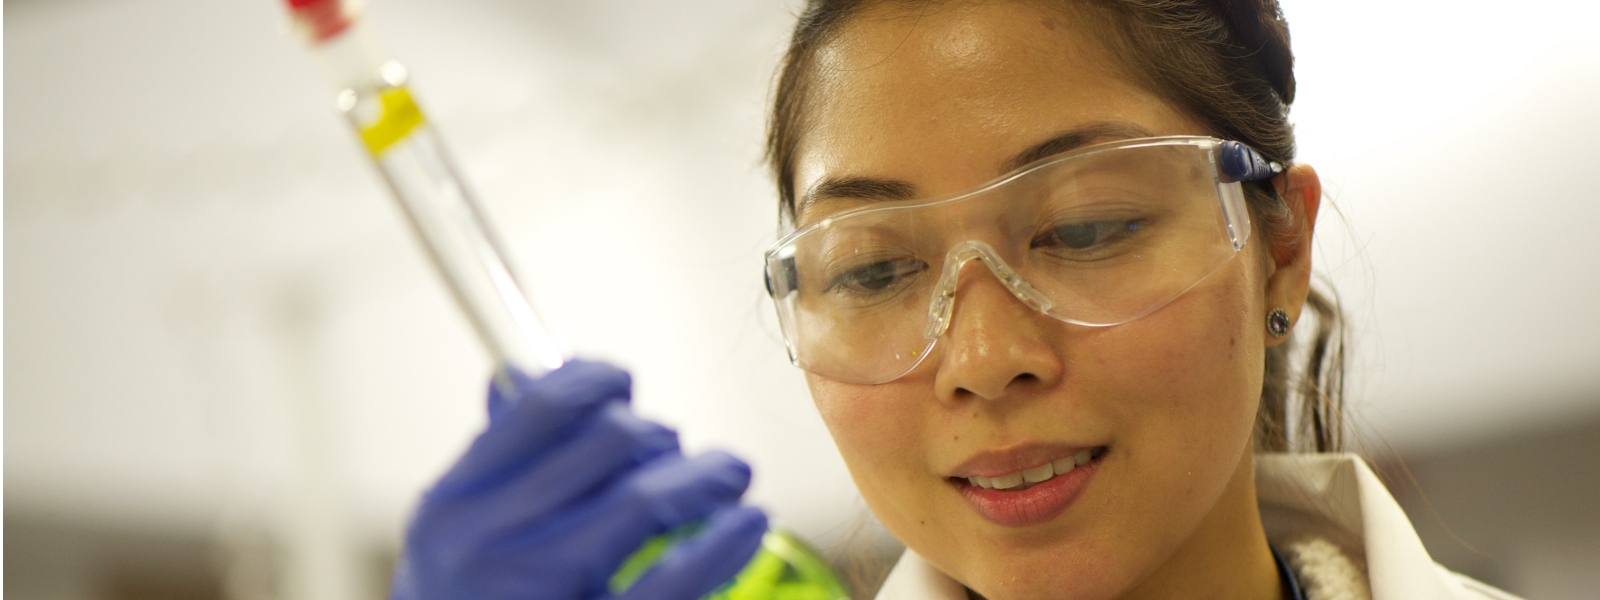 Laboratory Researcher Looking At Flask of Green Liquid 1600x600